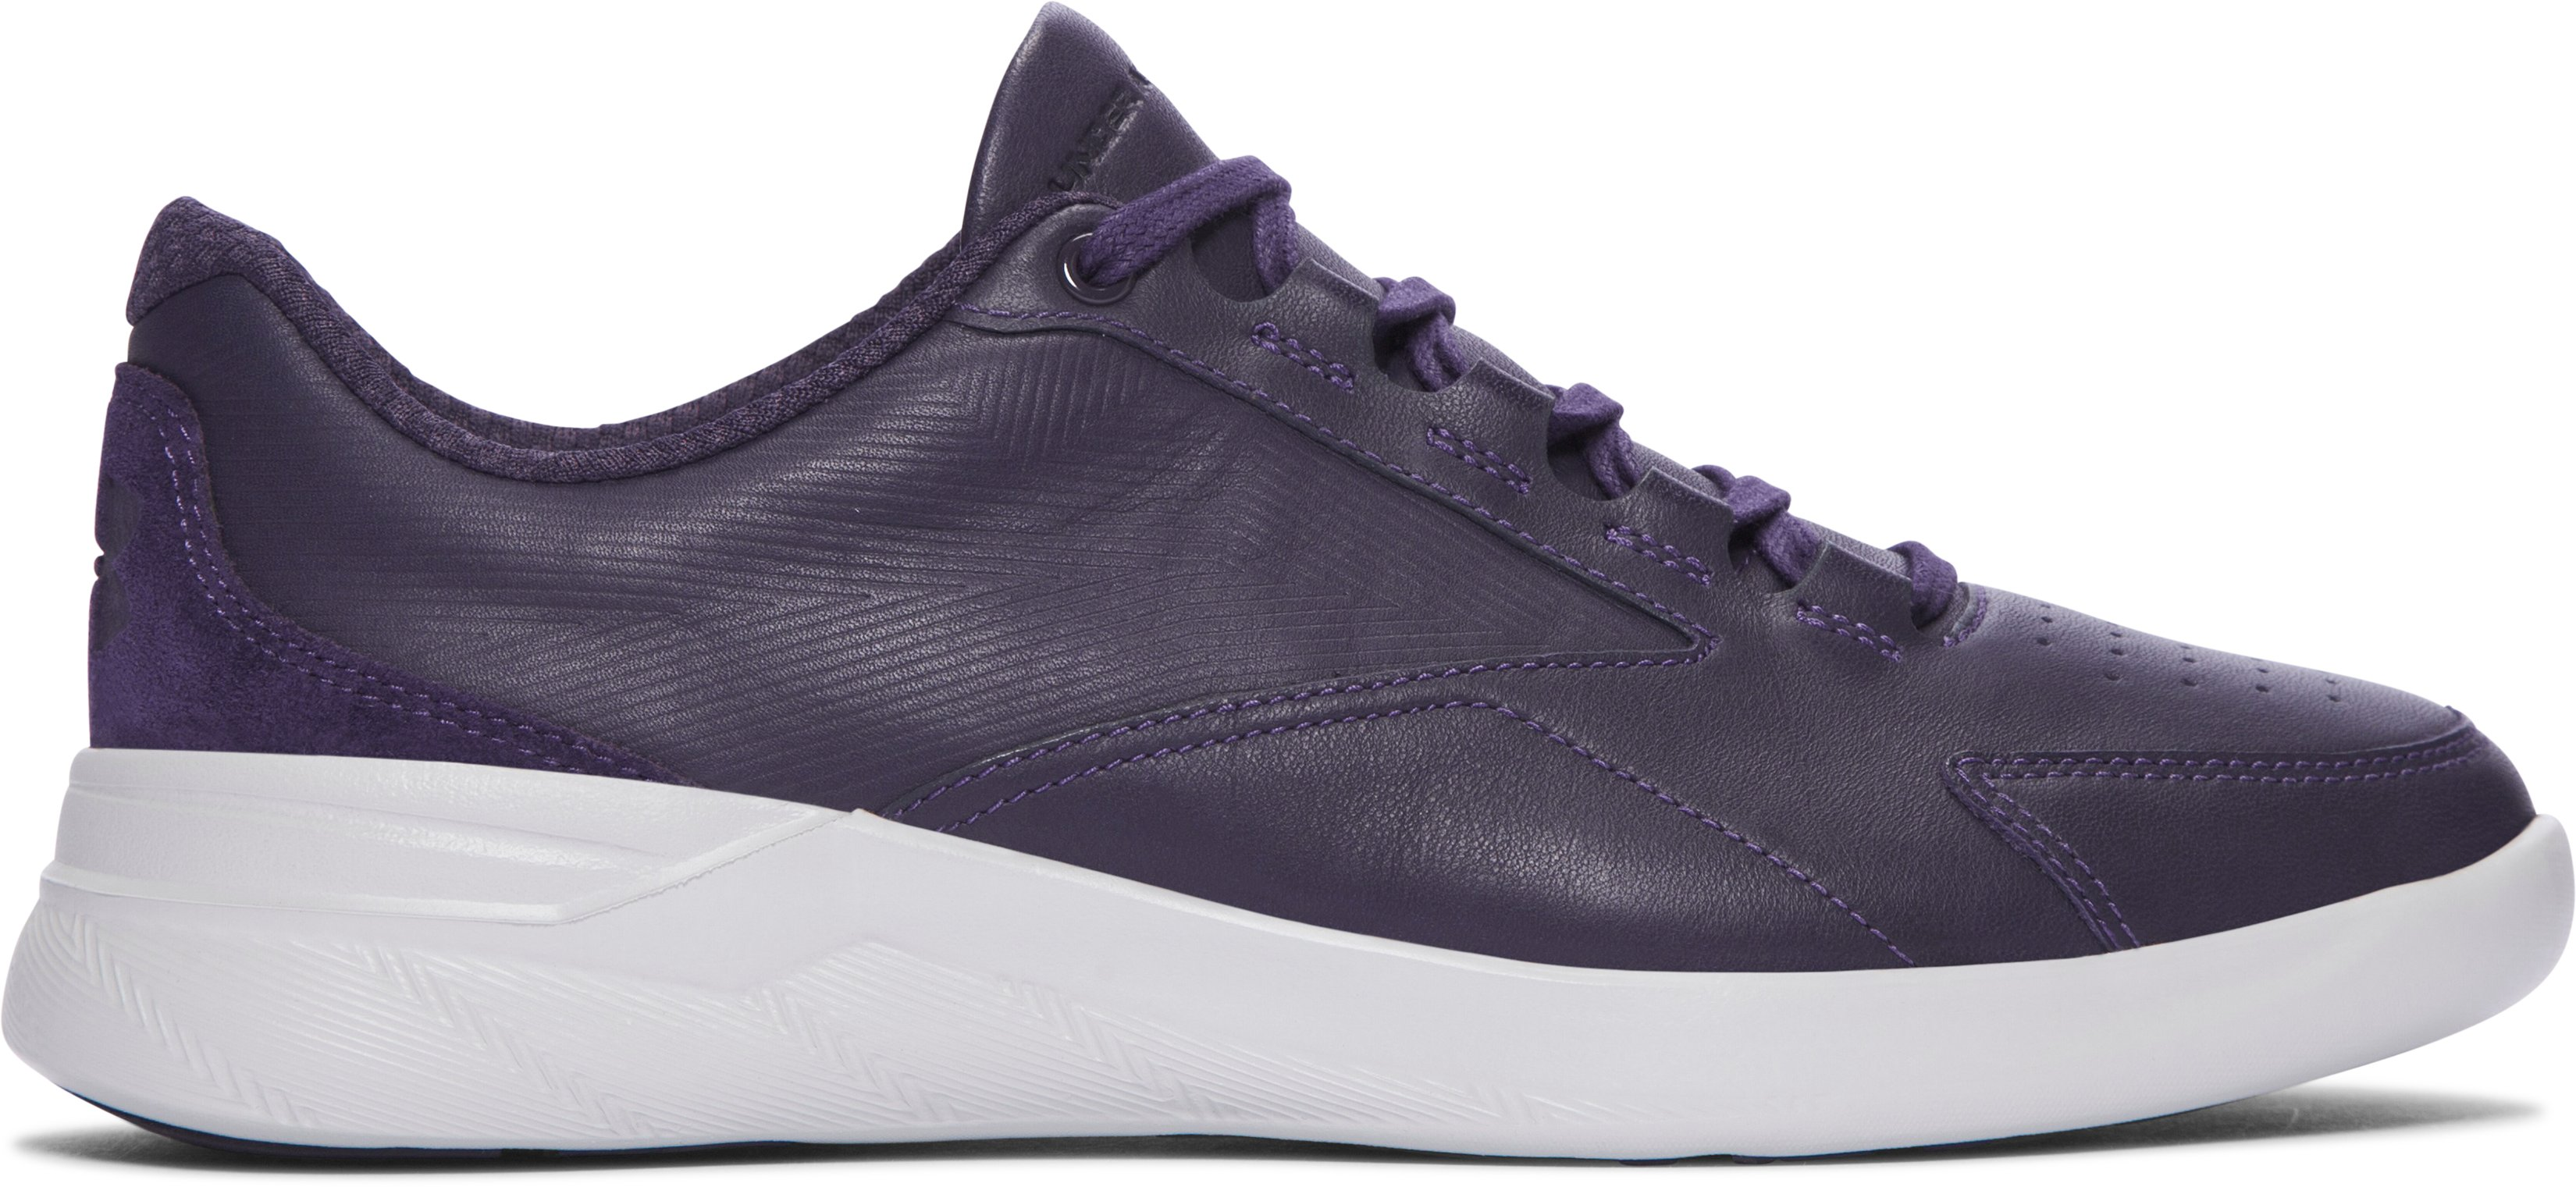 Women's UA Charged Pivot Low Tinted Neutrals Lifestyle Shoes, IMPERIAL PURPLE